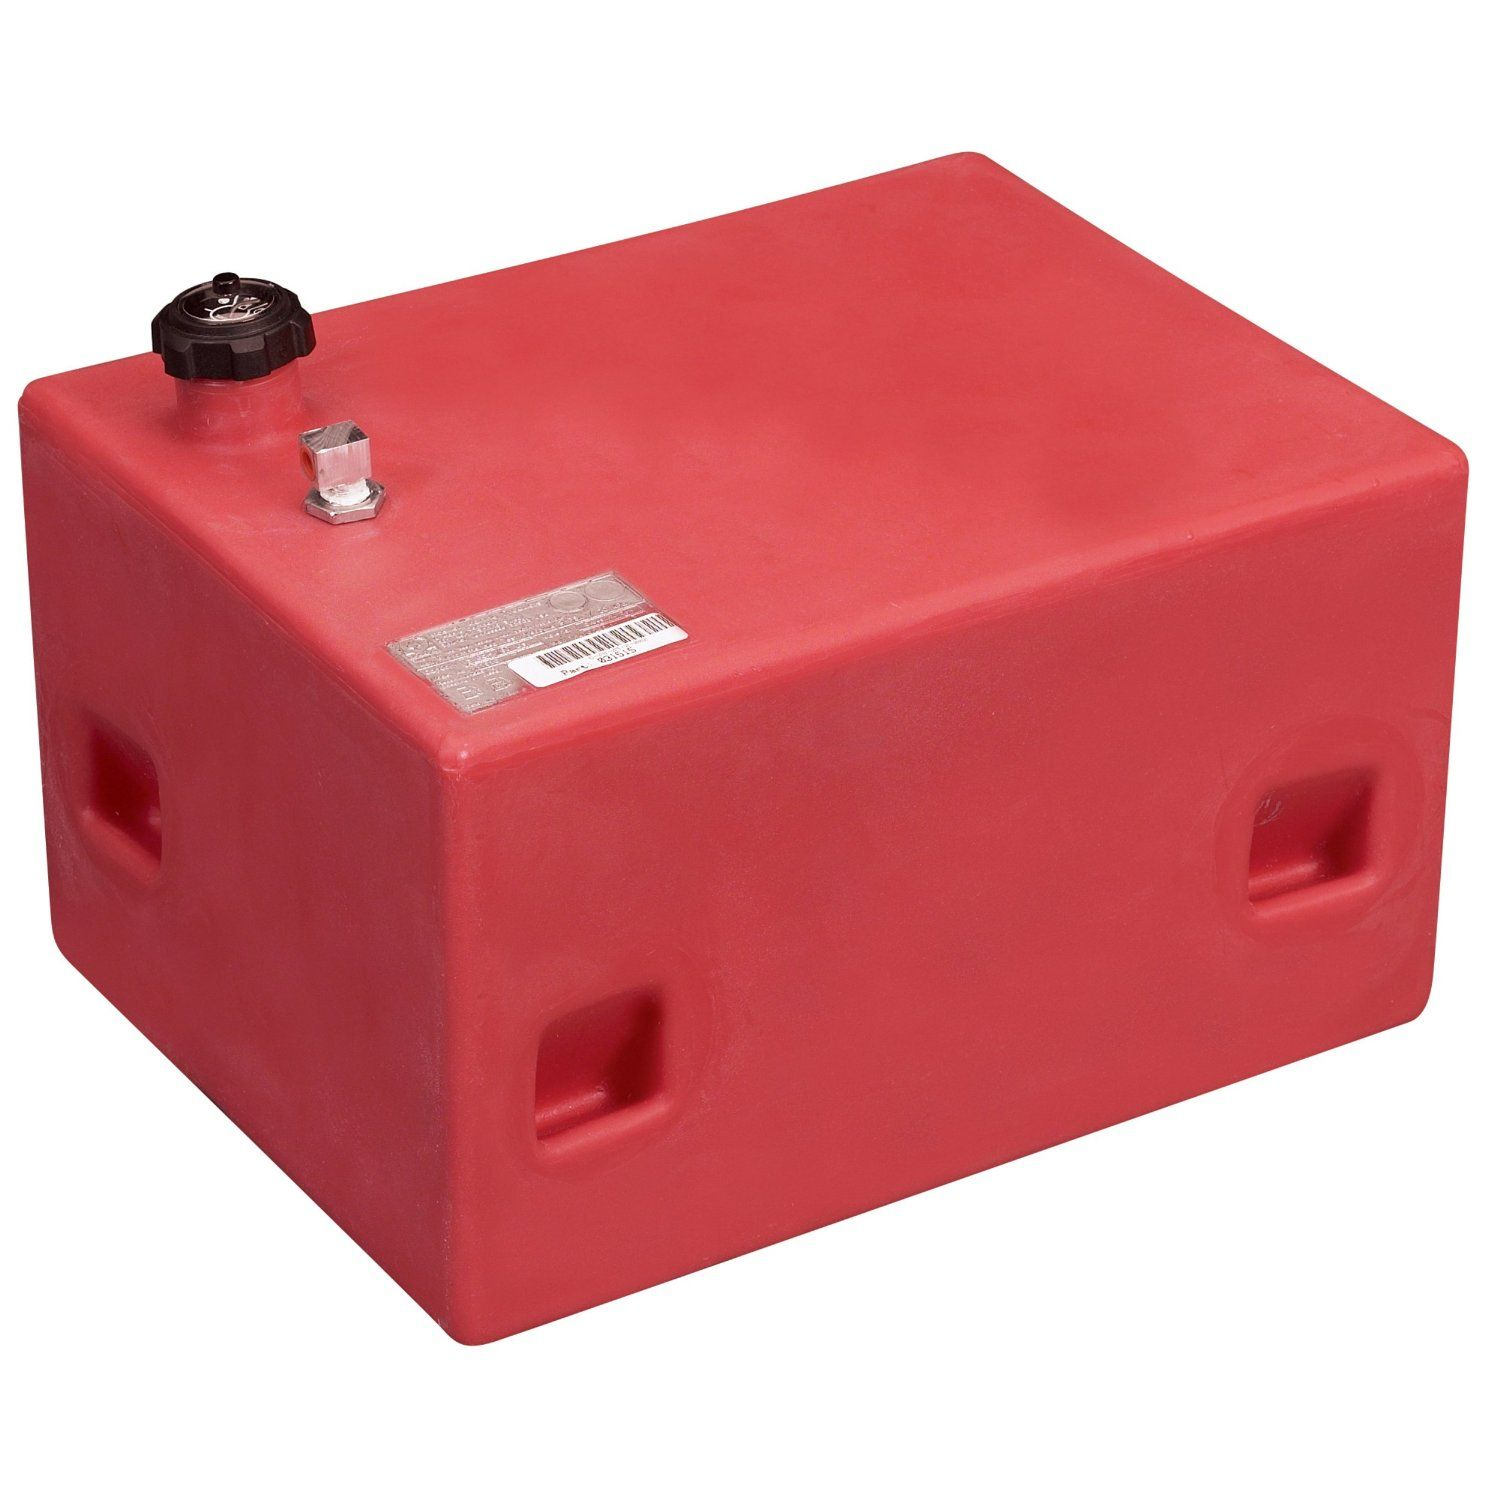 The Homestead Survival Gas Storage 15 Gallon Topside Fuel Tank With Mechanical Vent Gauge Emergency Prepping Emergency Preparedness Family Emergency Plan